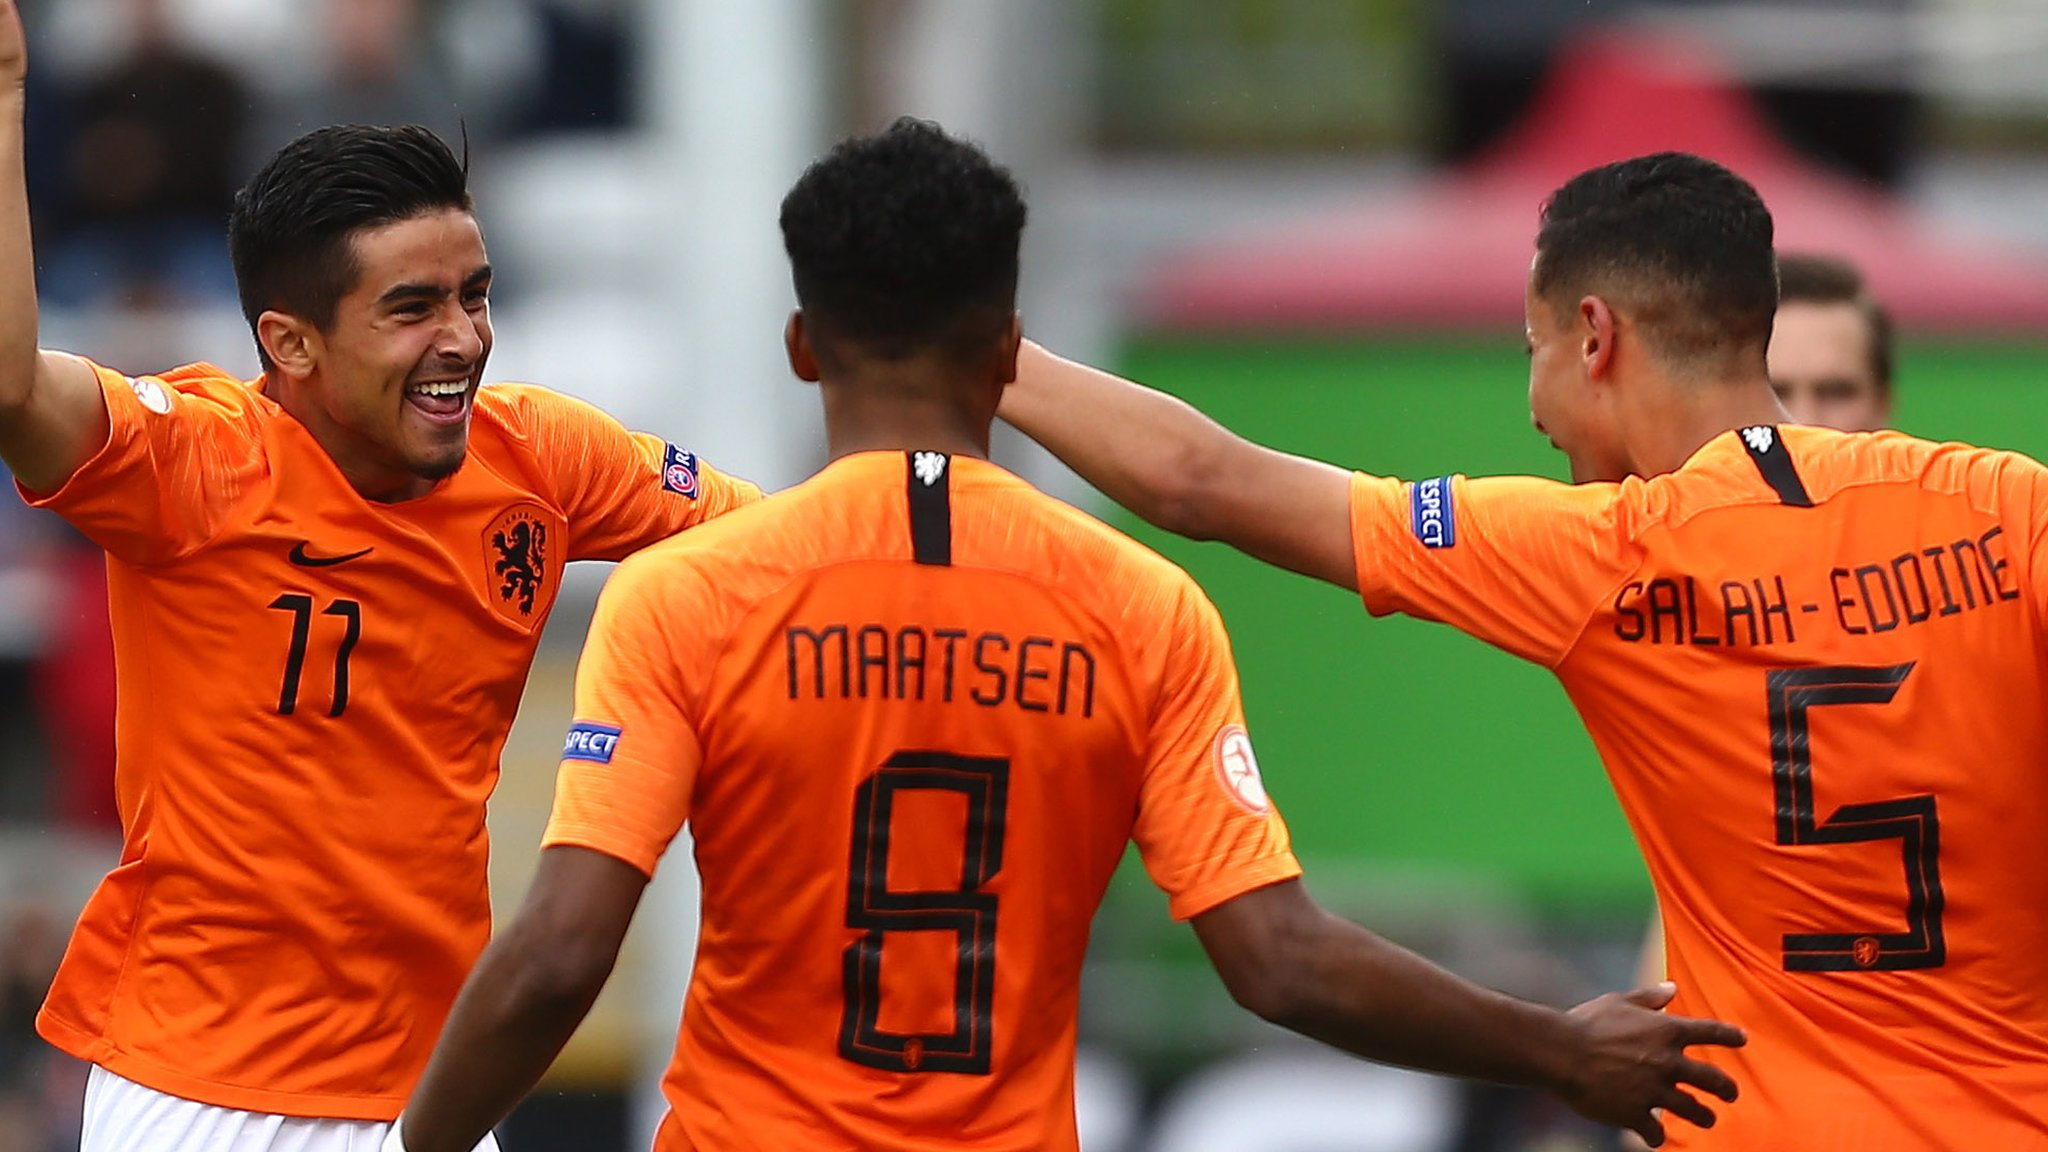 Uefa Under-17 final: Netherlands beat Italy again in final to retain title